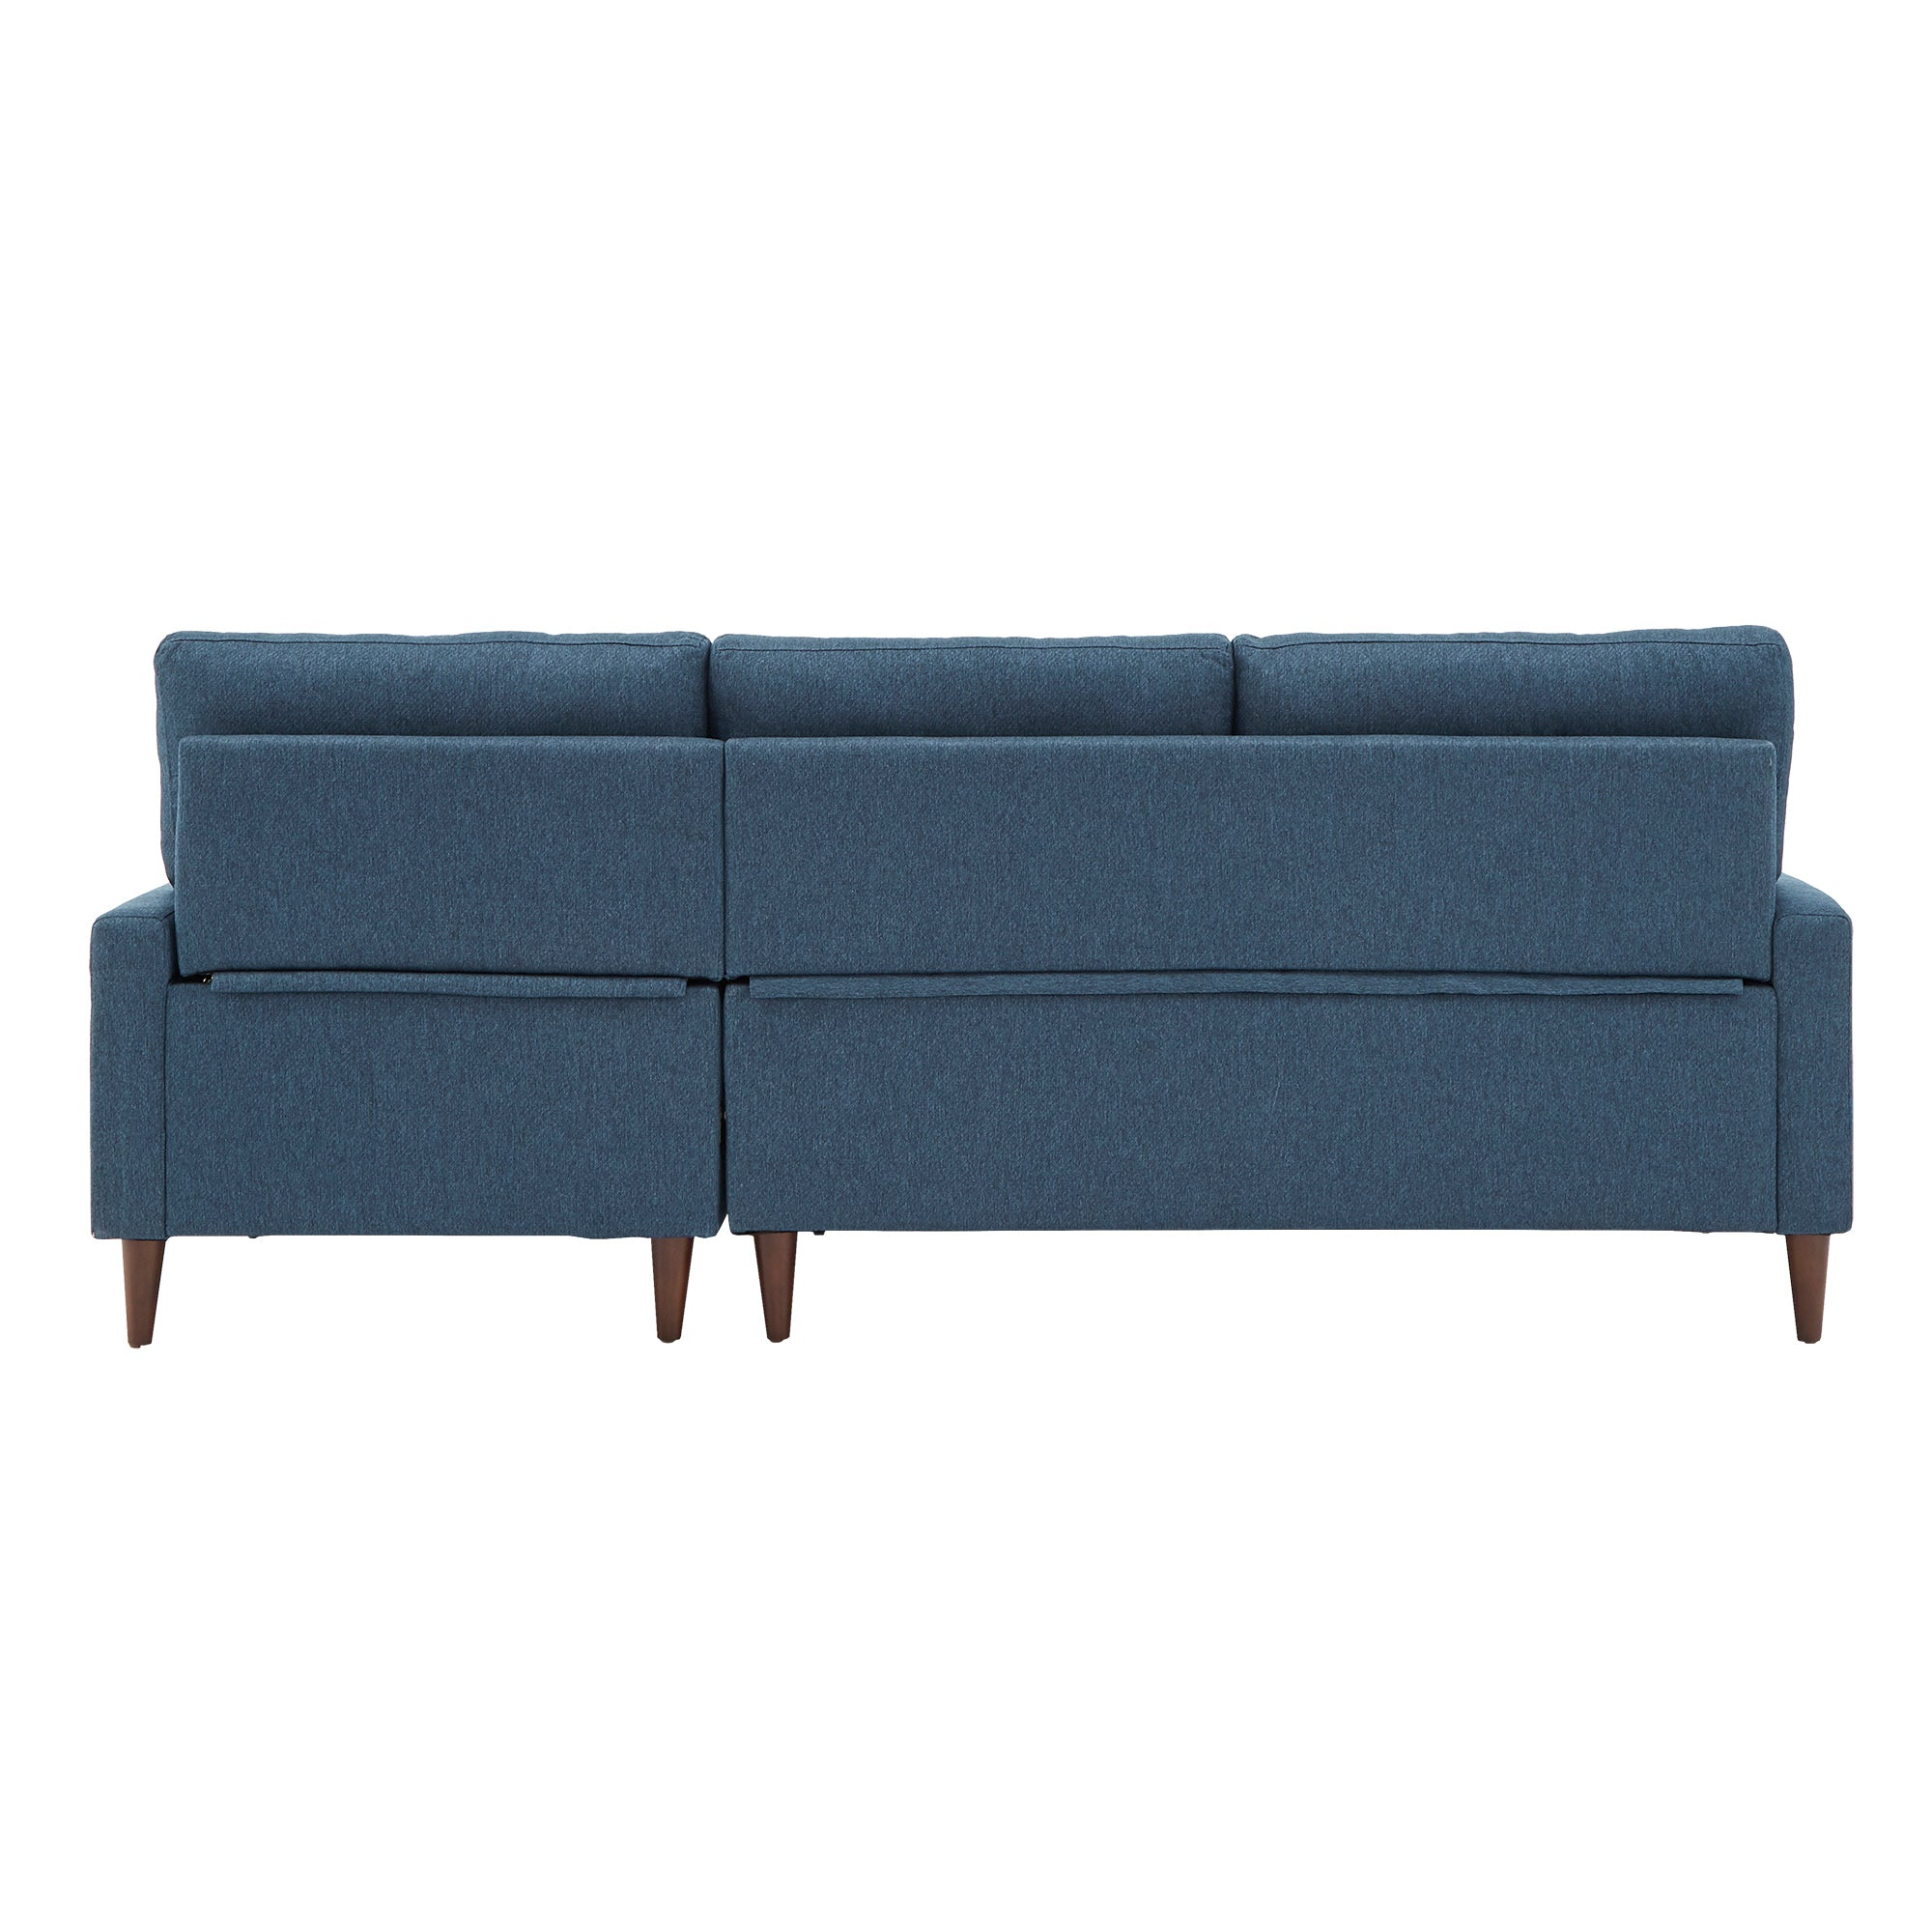 Walnut Finish Fabric Sectional Sofa with Pull-Out Bed and Storage Chaise - Blue